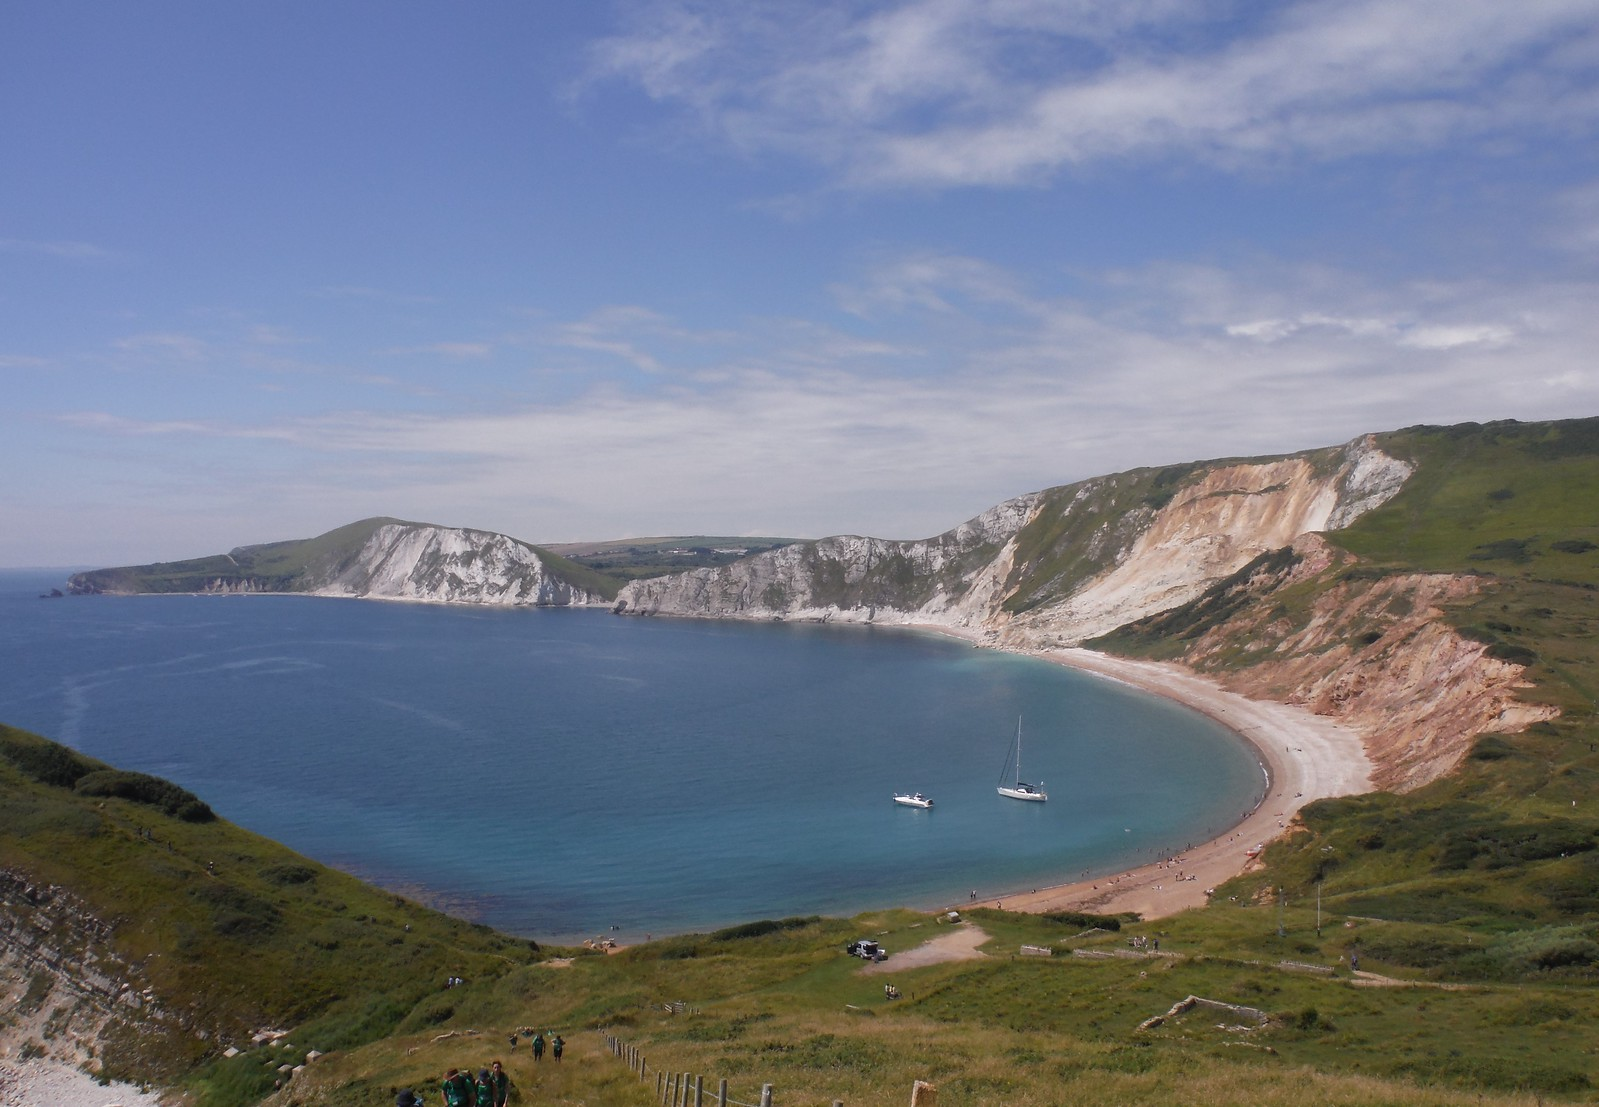 Worbarrow Bay to Mupe Bay, from Ascent up Gad Cliff SWC Walk 54 - Lulworth Cove Circular (via Tyneham and Durdle Door)